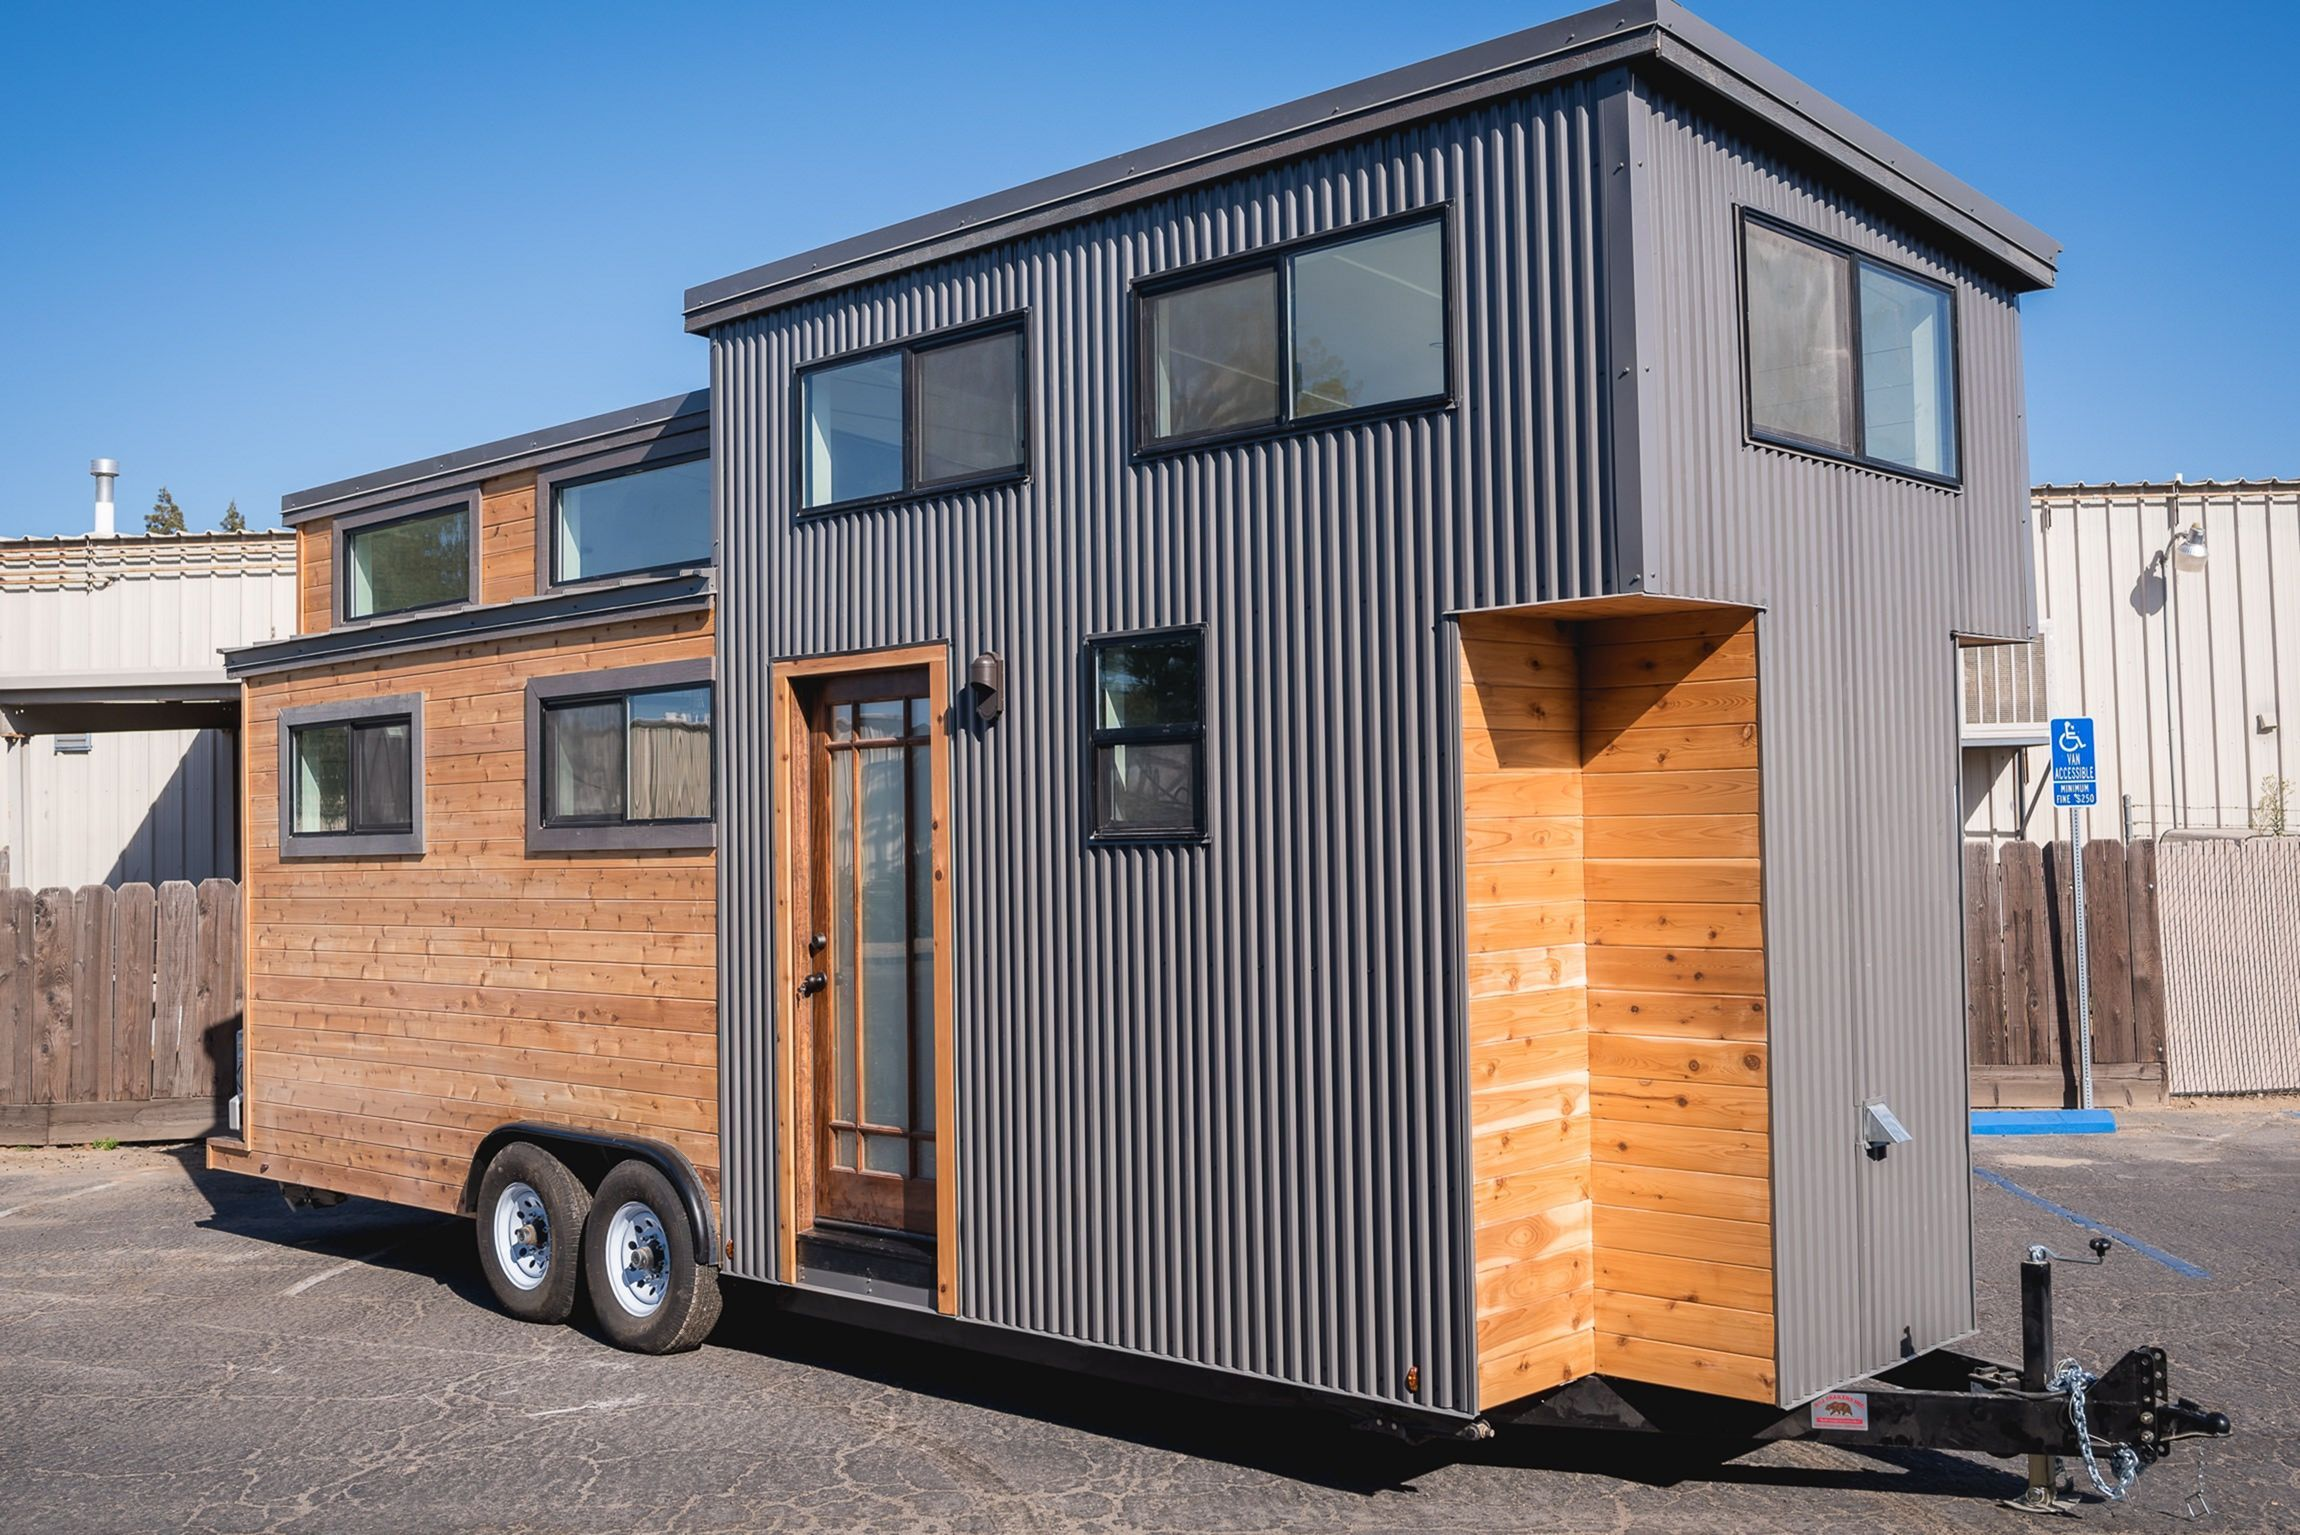 15 Best Multi Storey Tiny House Designs For Your Small Family